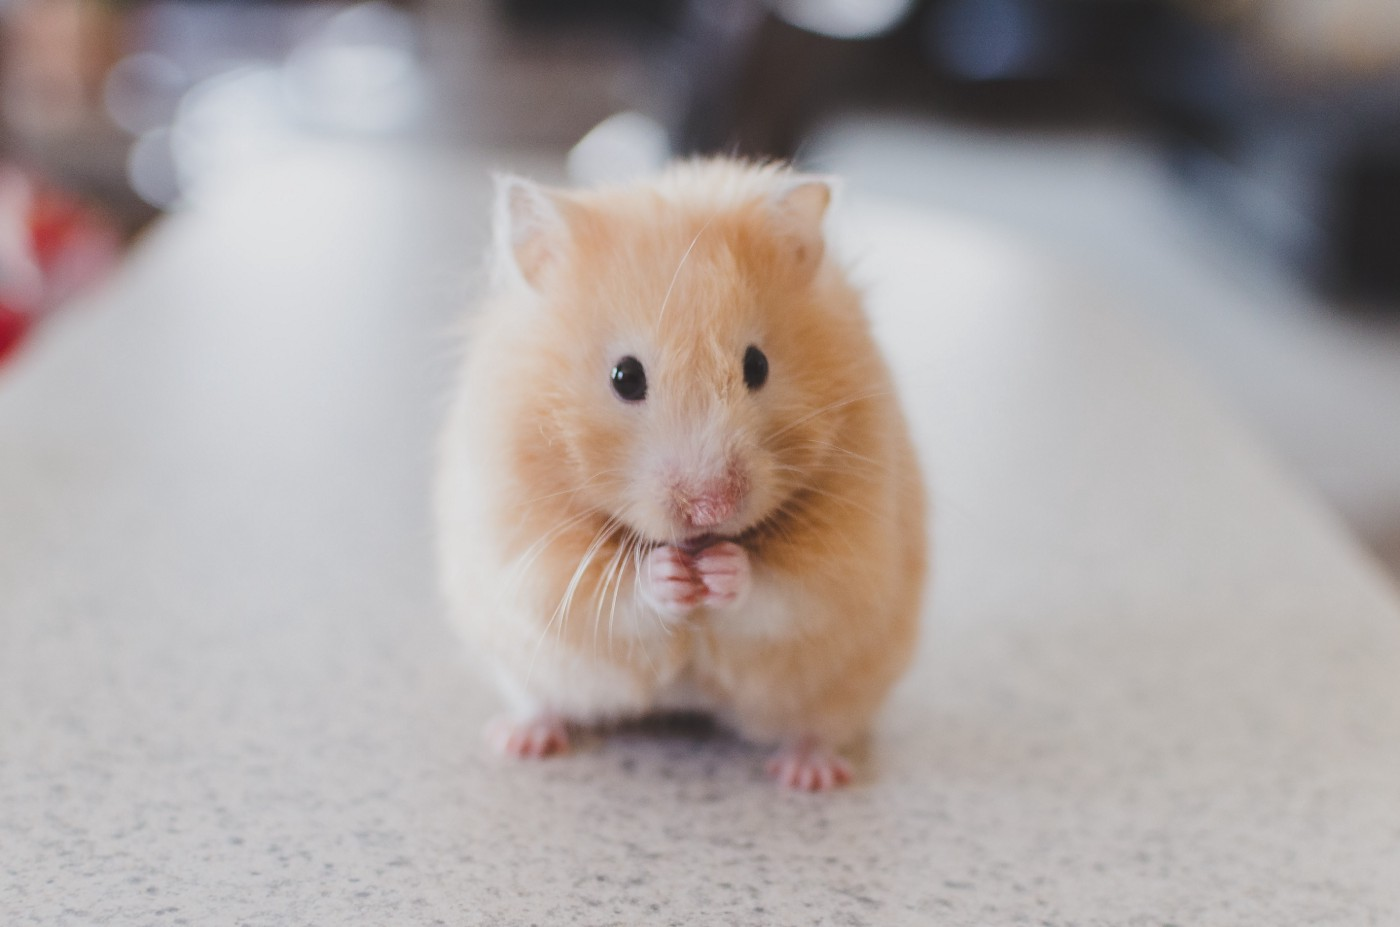 a cute orangish mouse with its front paws together